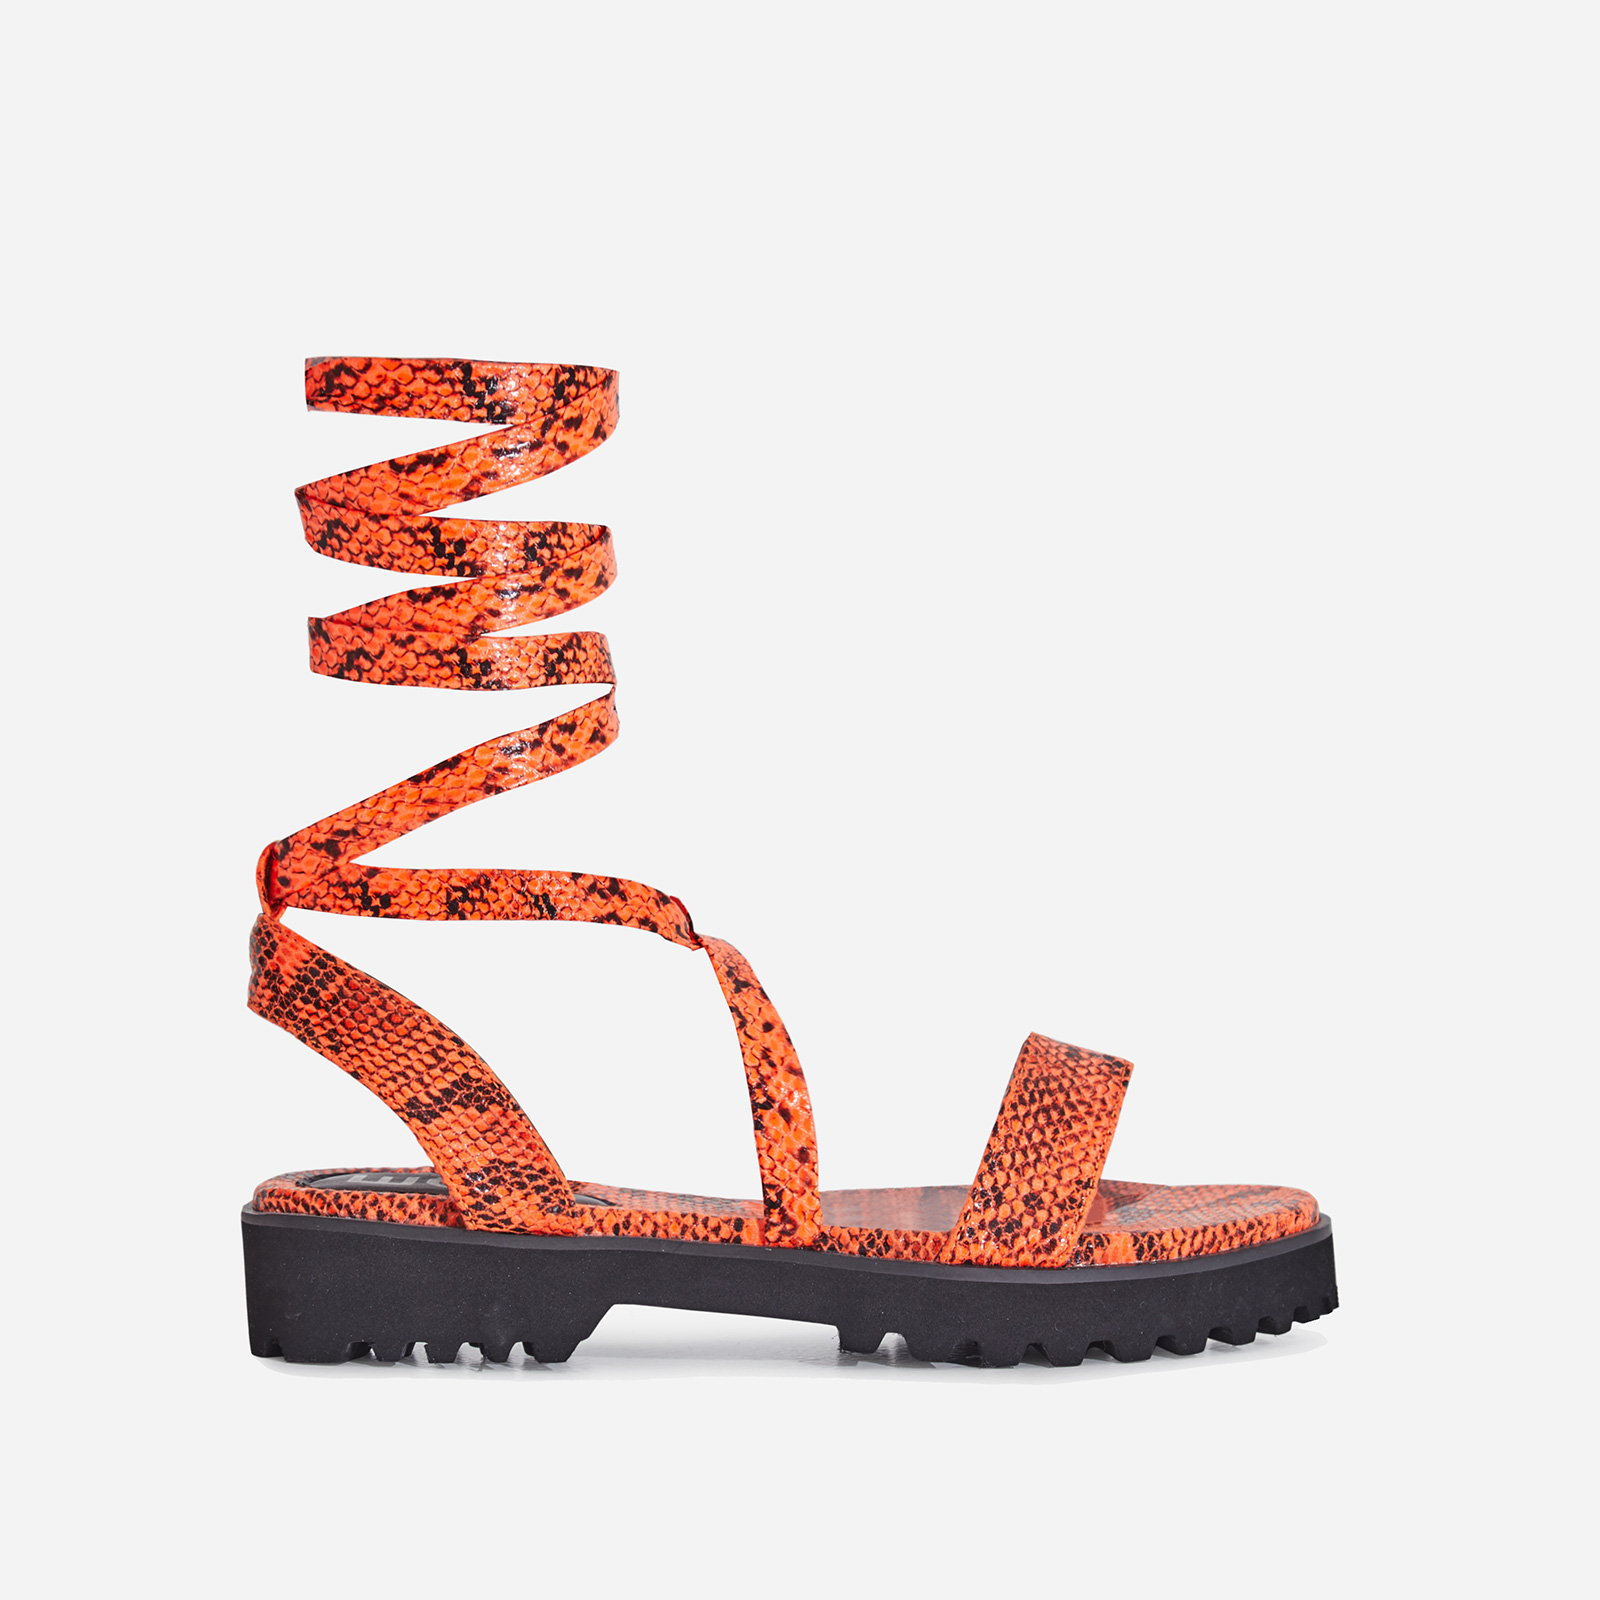 Larkin Lace Up Flat Sandal In Neon Orange Snake Print Faux Leather